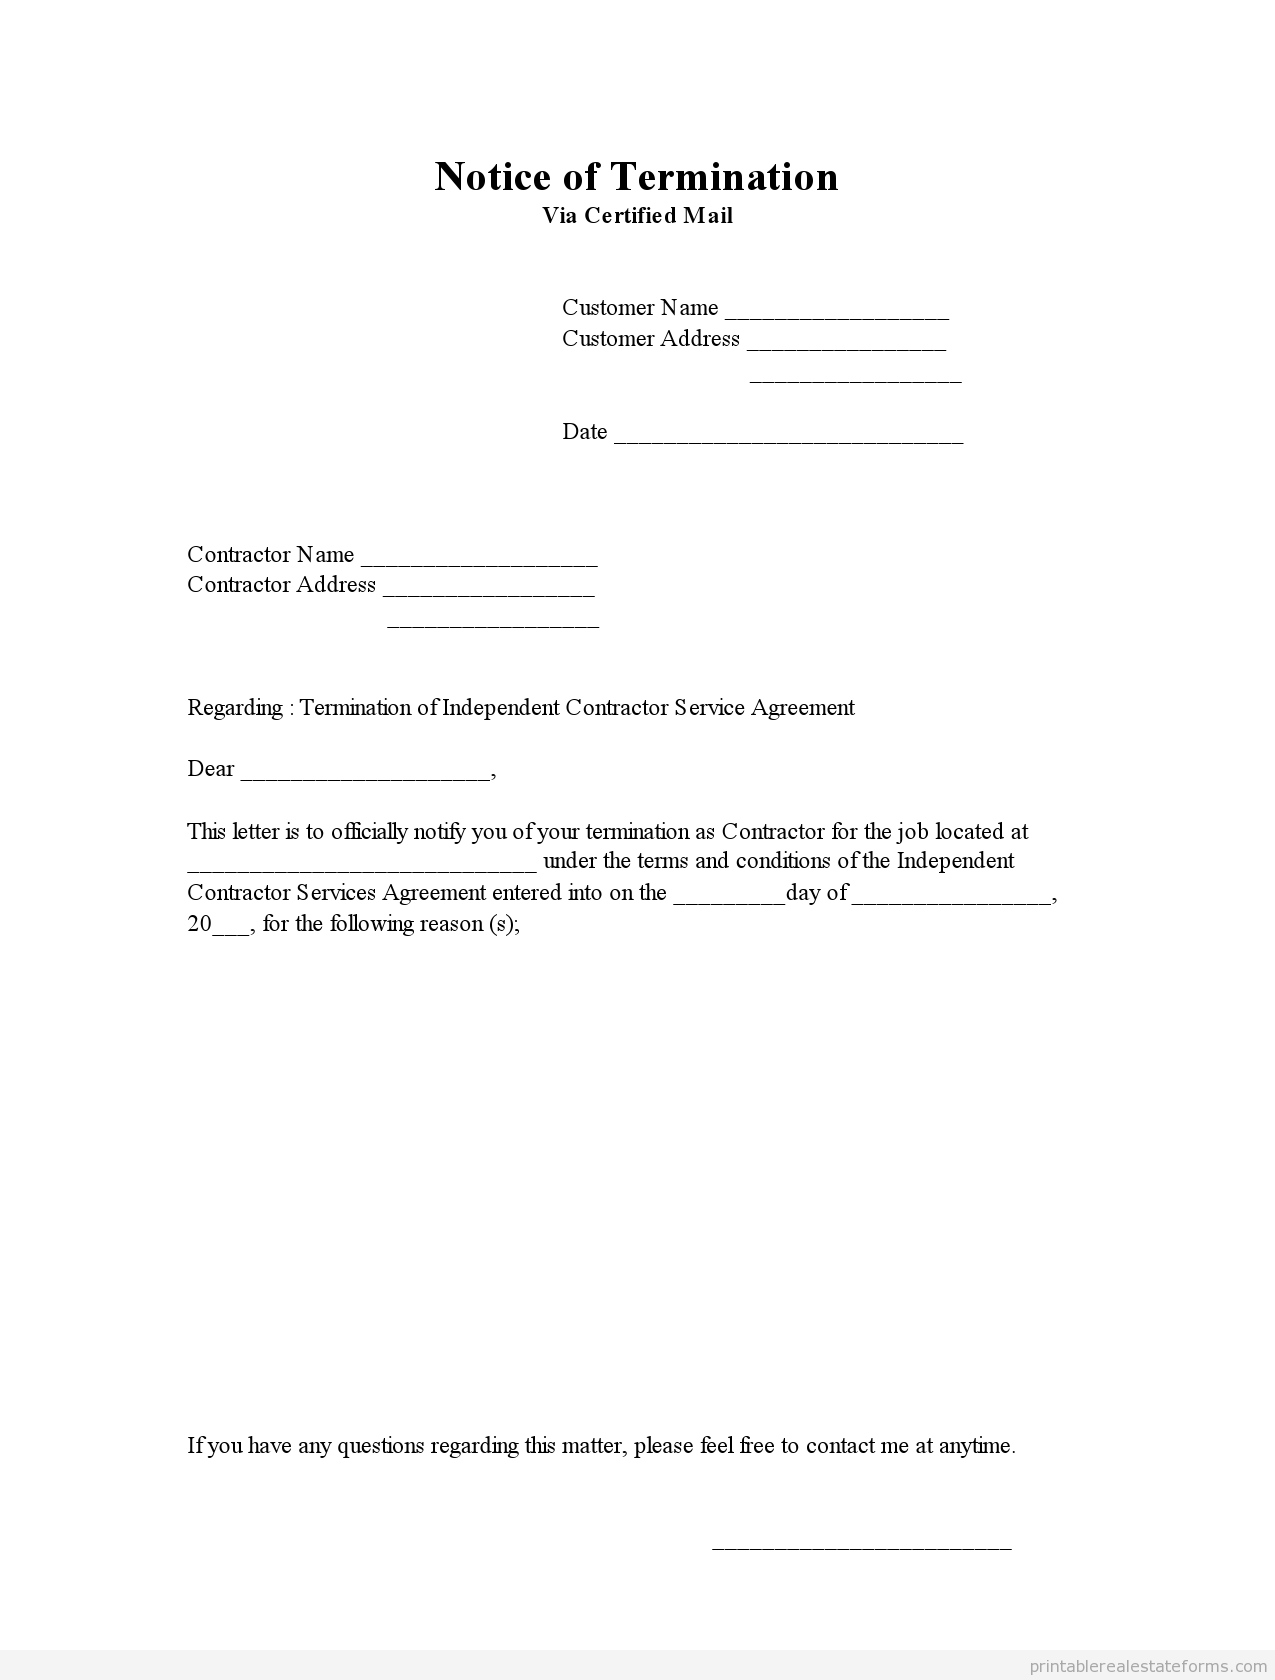 sample printable notice of termination form